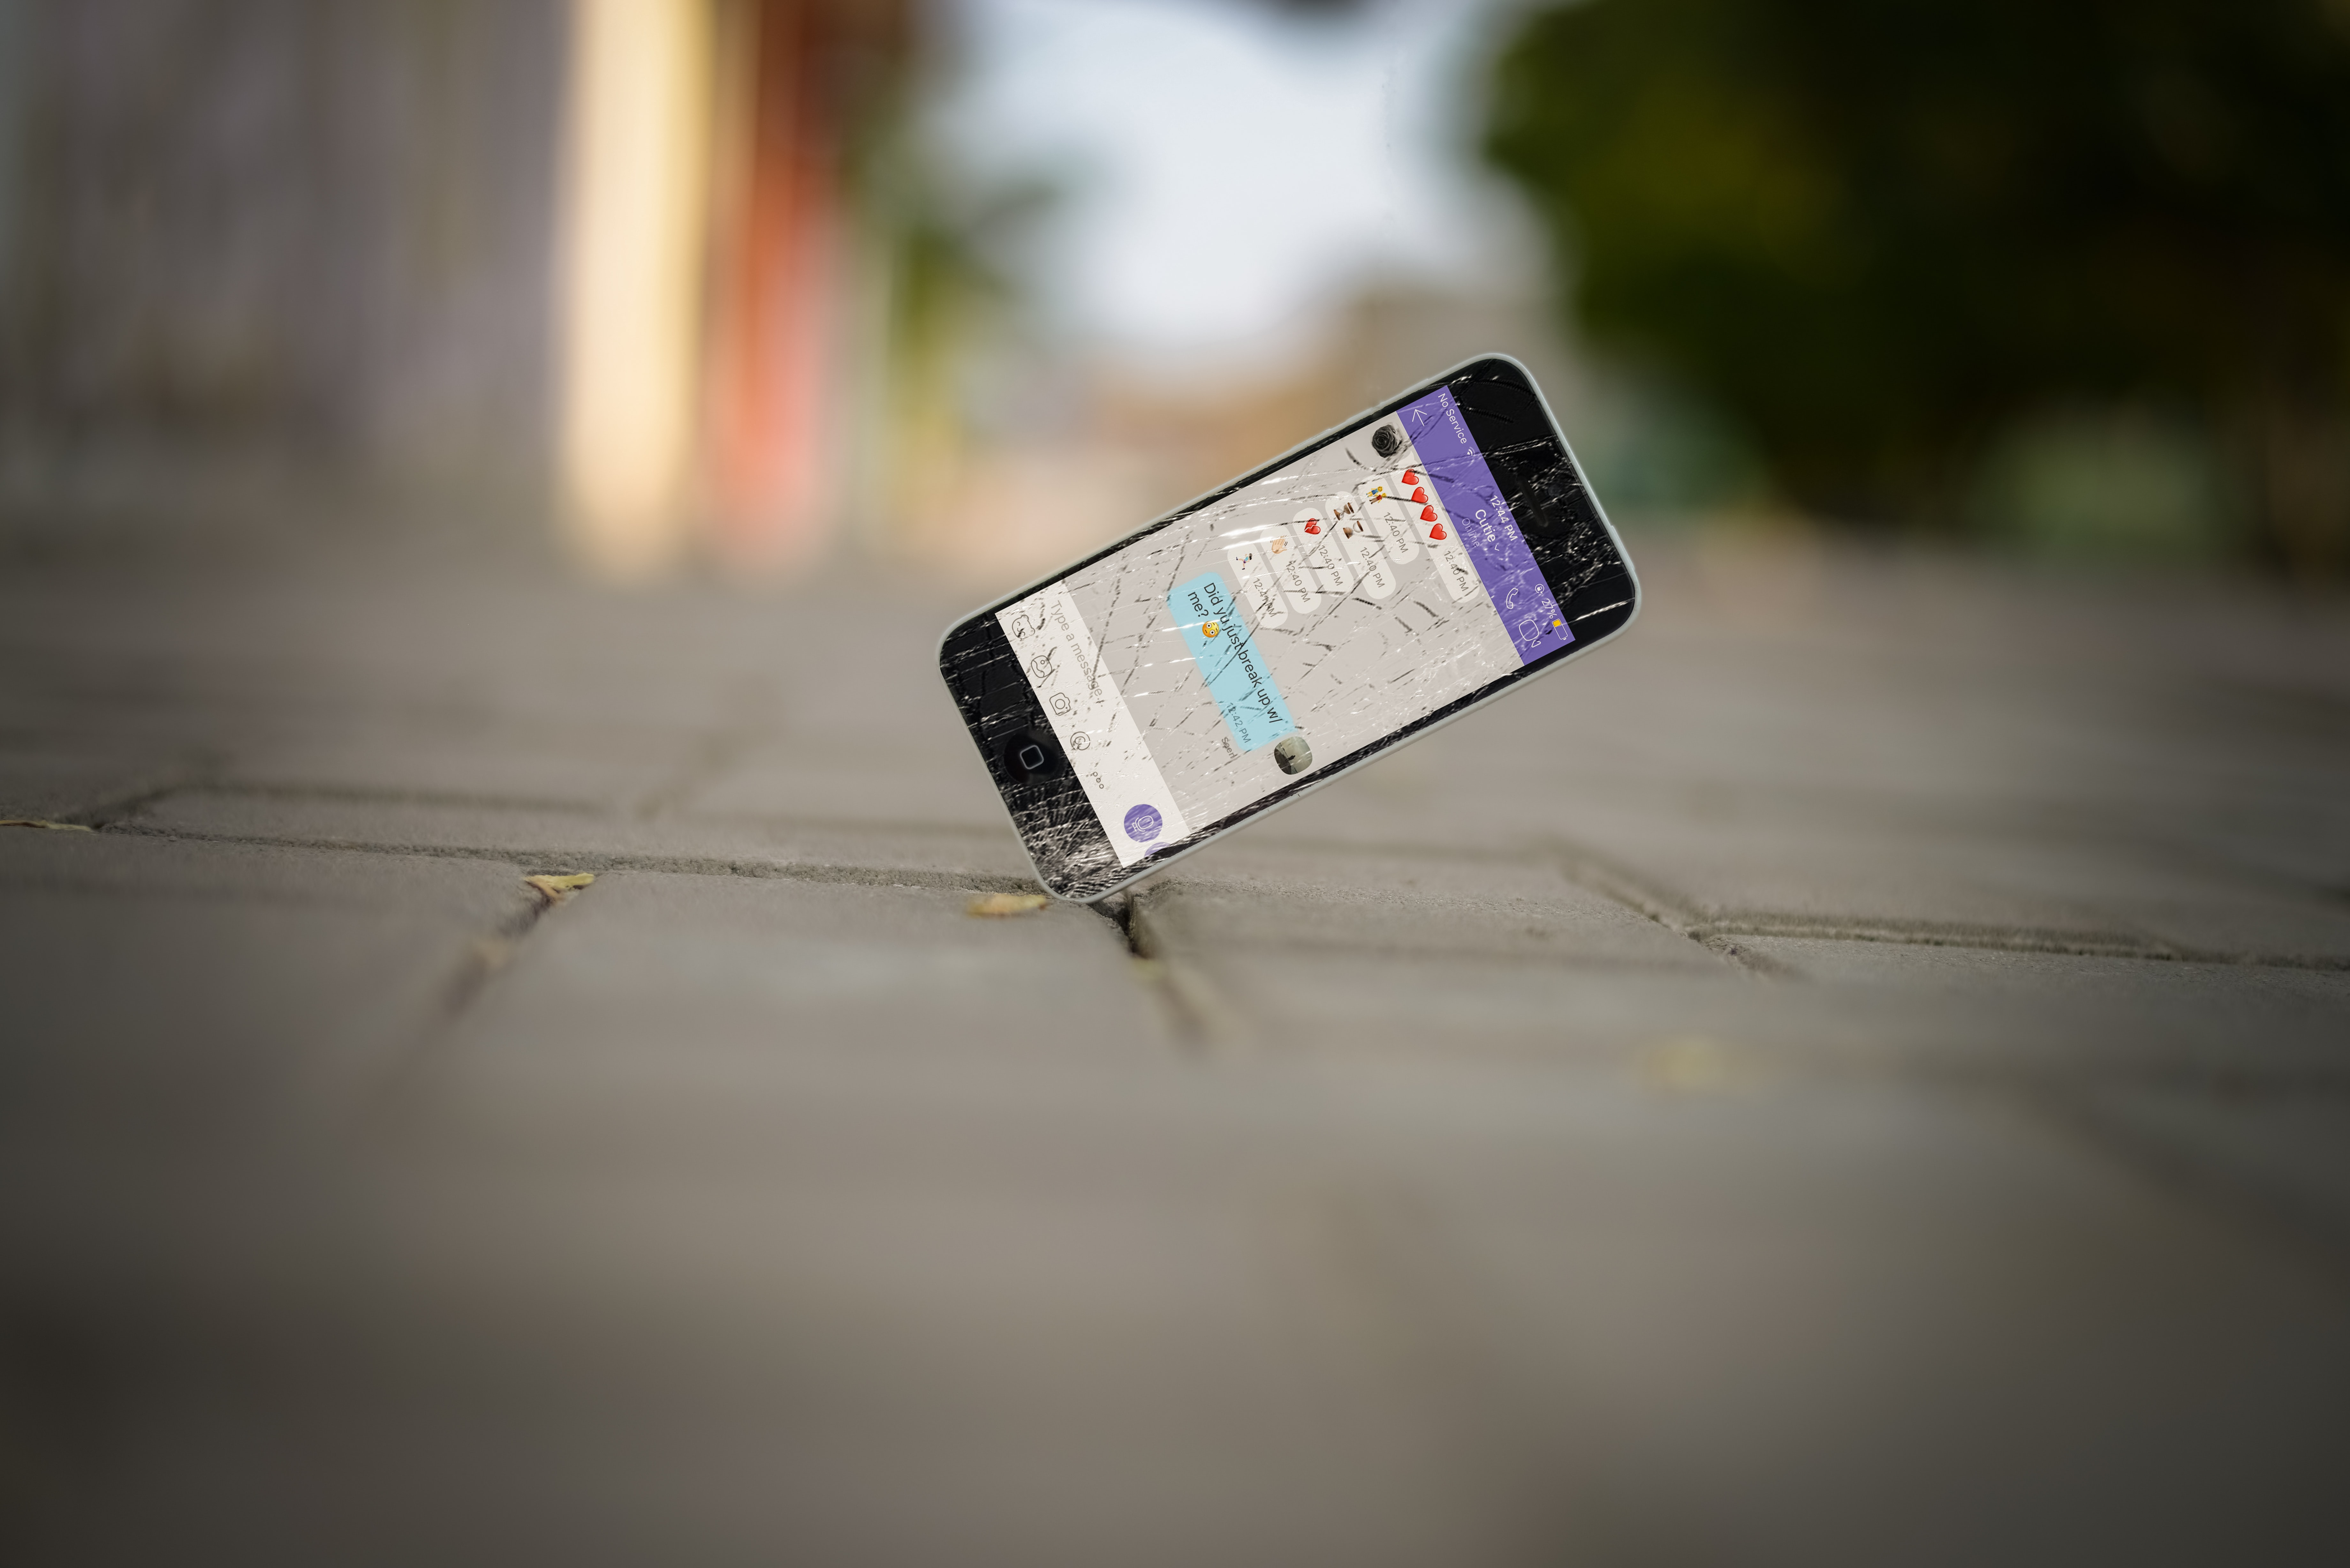 selective focus photo of iPhone balance on brick pavement